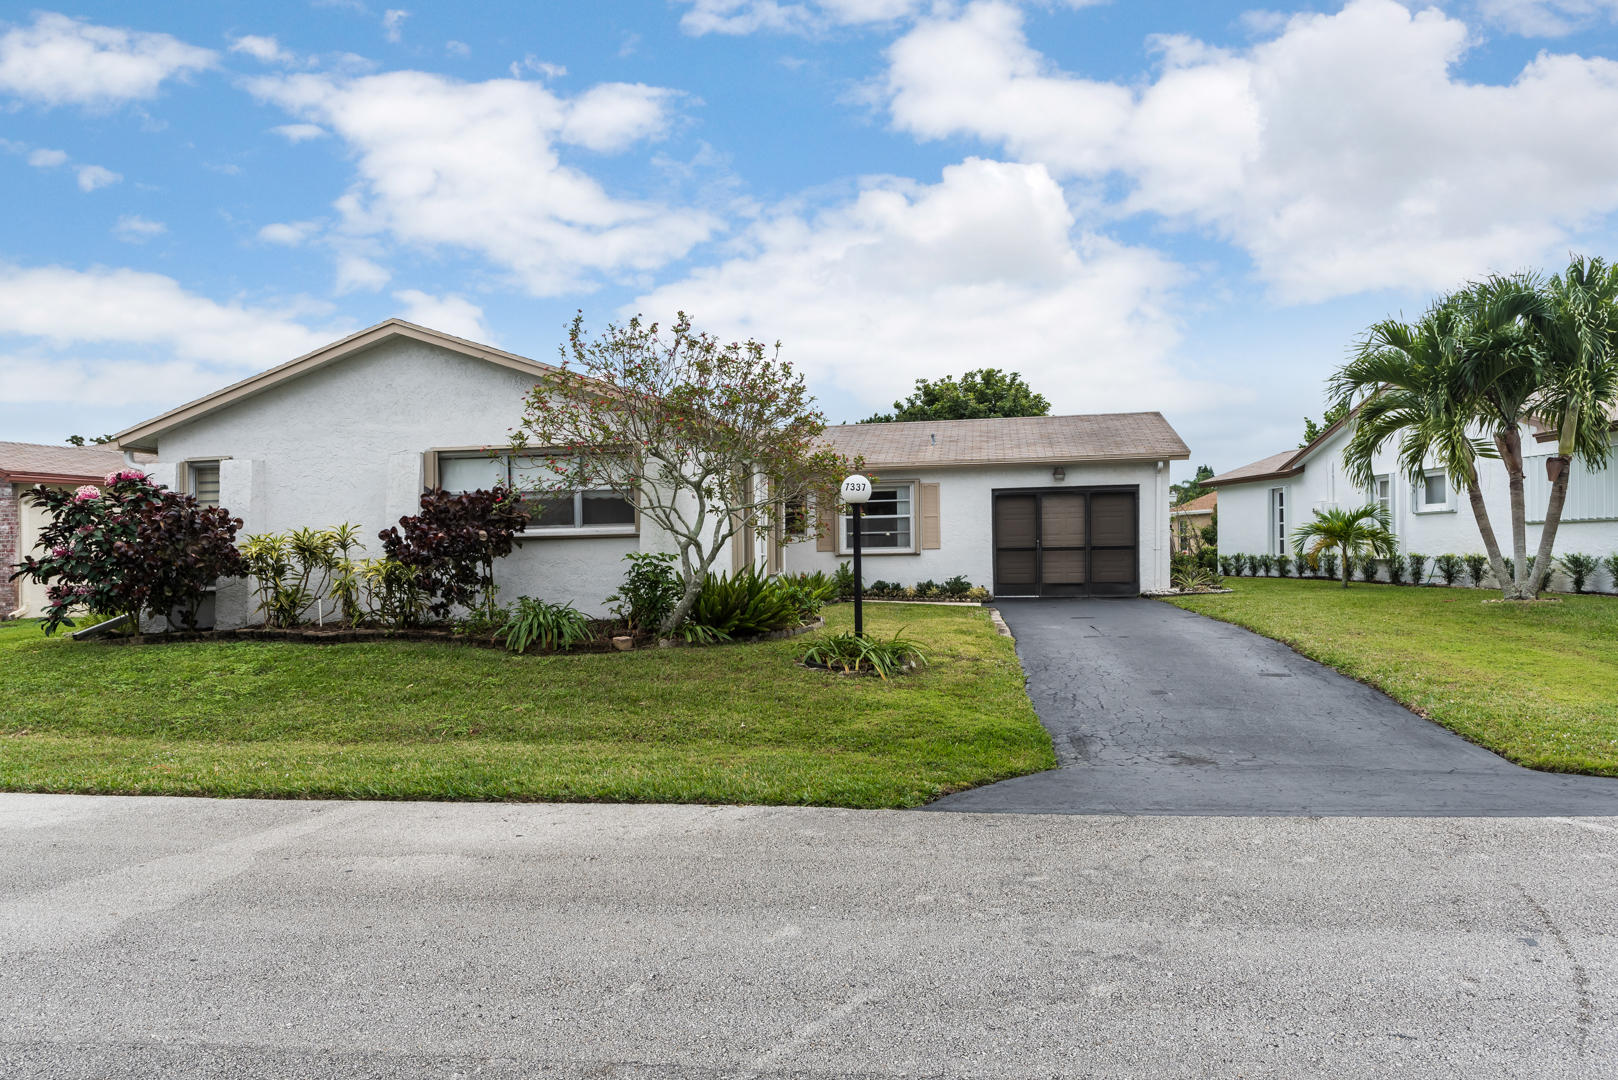 Home for sale in Lucerne Lakes Homes Lake Worth Florida